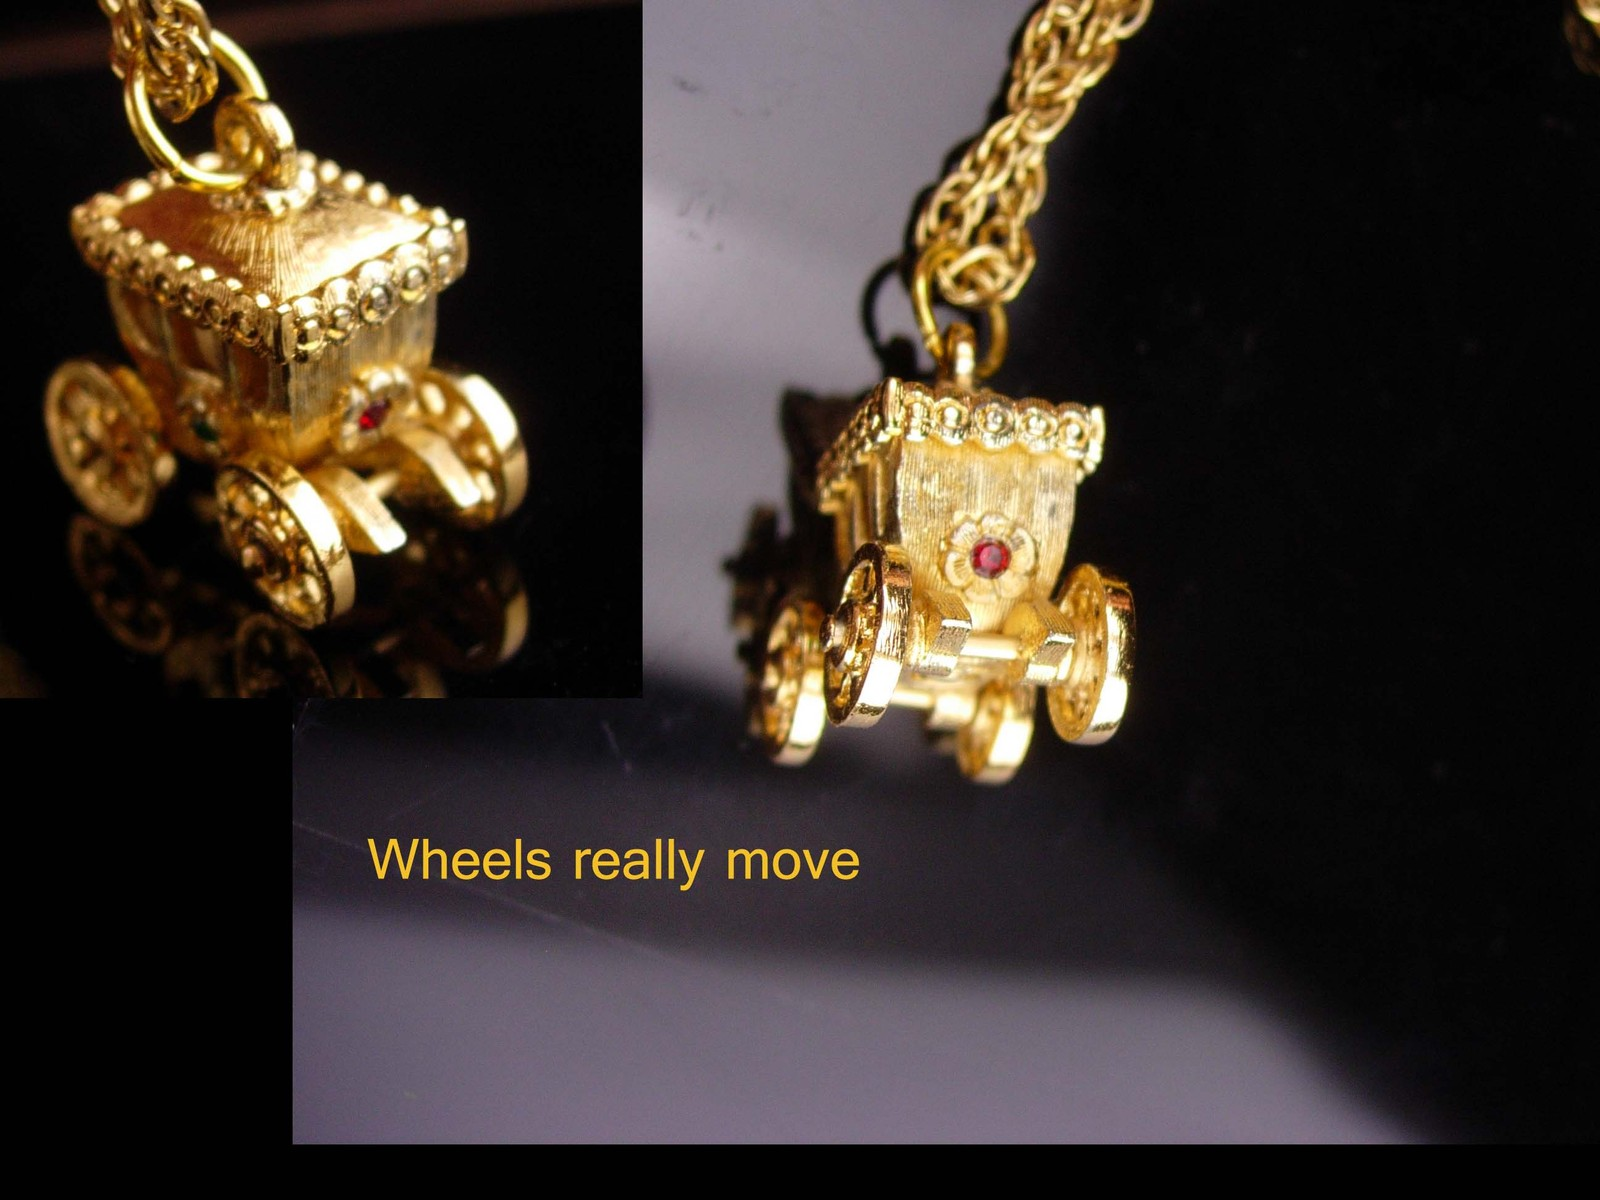 Cinderella Carriage necklace/ mechanical charm / wheels really move / rhinestone